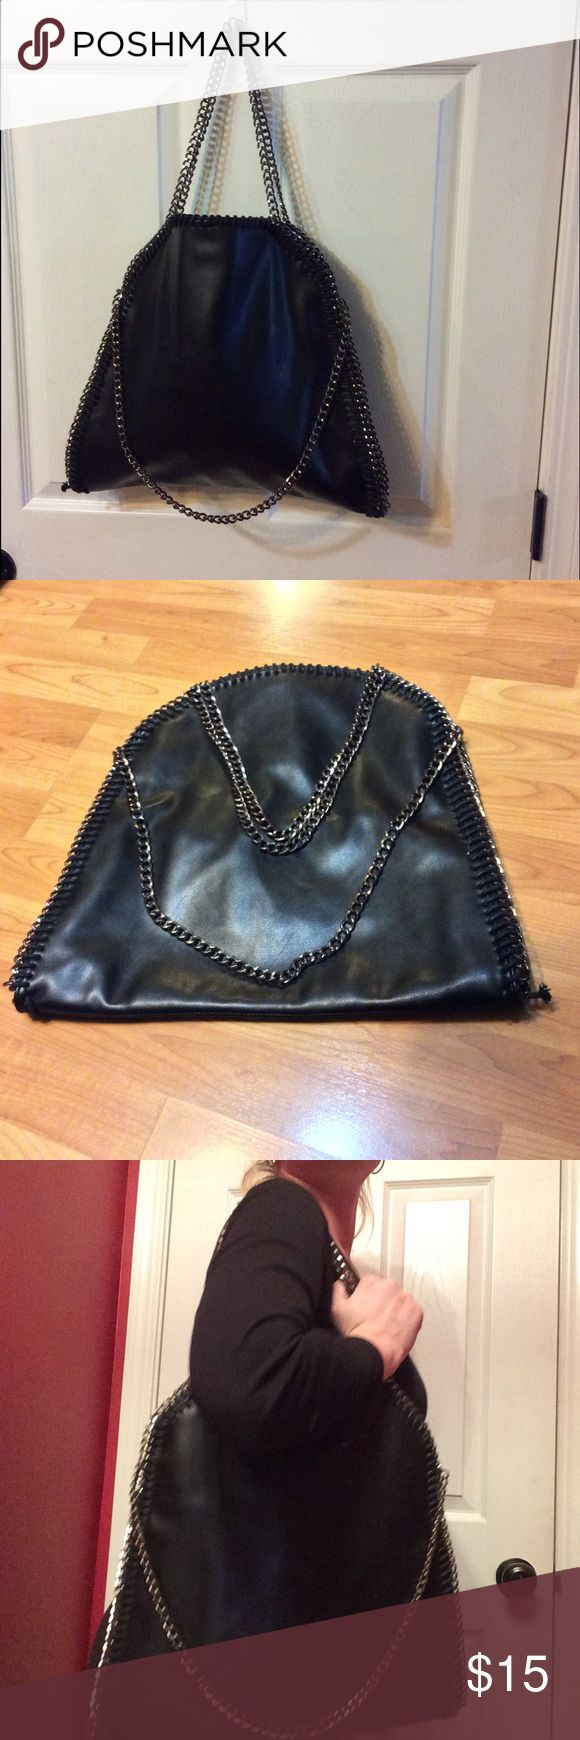 🎀✨❗️SALE❗️CHIC black hobo bag with chain handles Like new! Very good condition. I purchased it but never used it. Basically in unused condition! Paid $89  Similar to Stella McCartney Falabella but it's not.  Check out my closet for more steals and bundle deals!!  Purchase includes only items listed. Thanks for looking! Nordstrom Bags Hobos